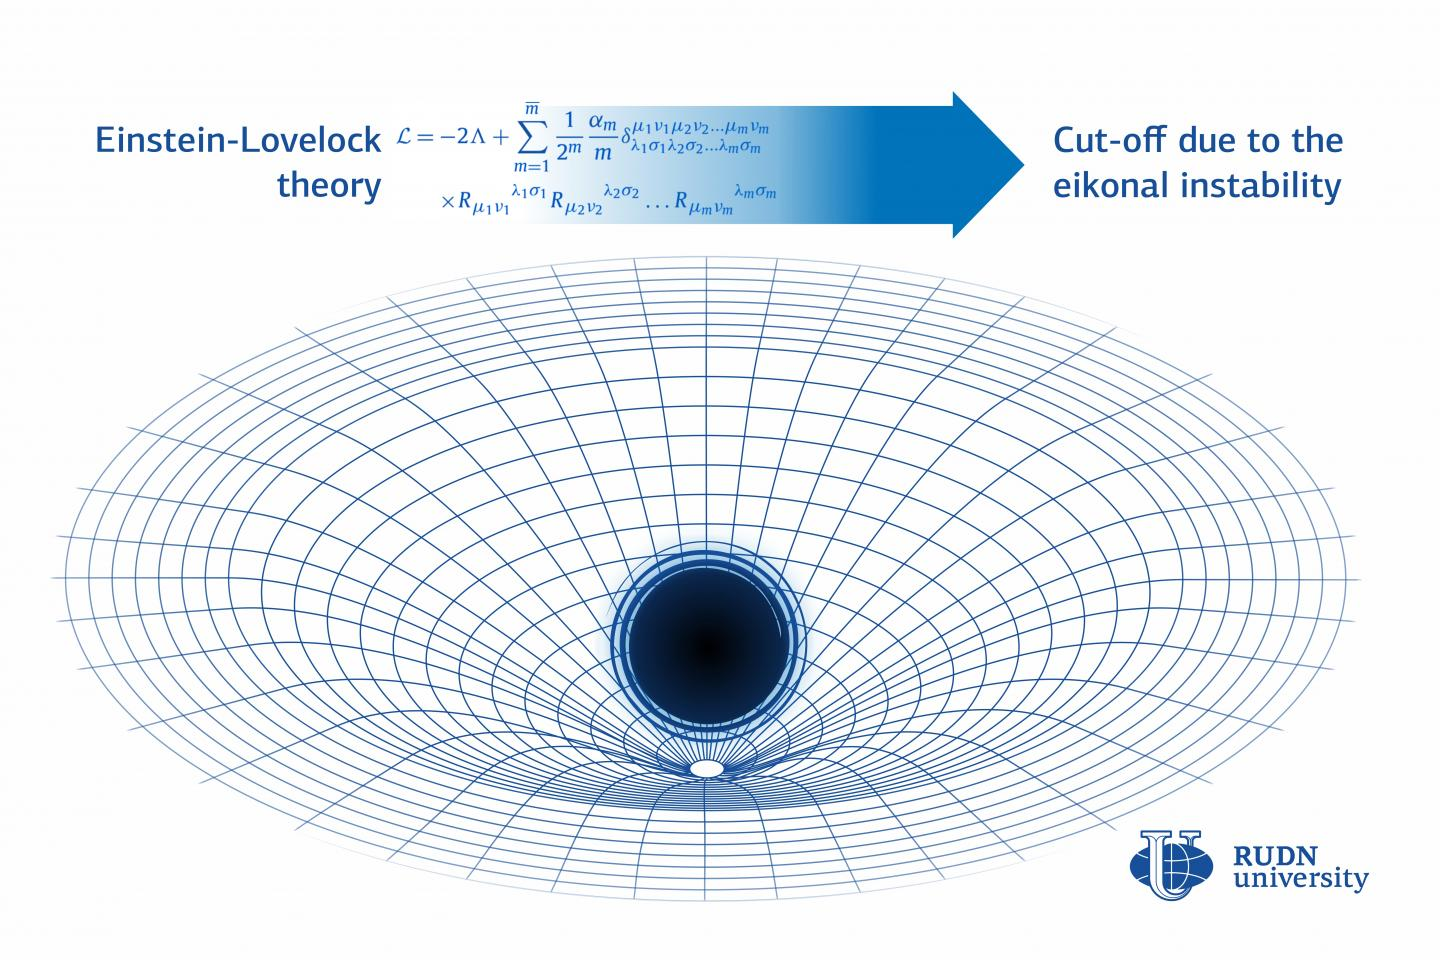 A RUDN University Physicist Simplified the Einstein-Lovelock Theory for Black Holes